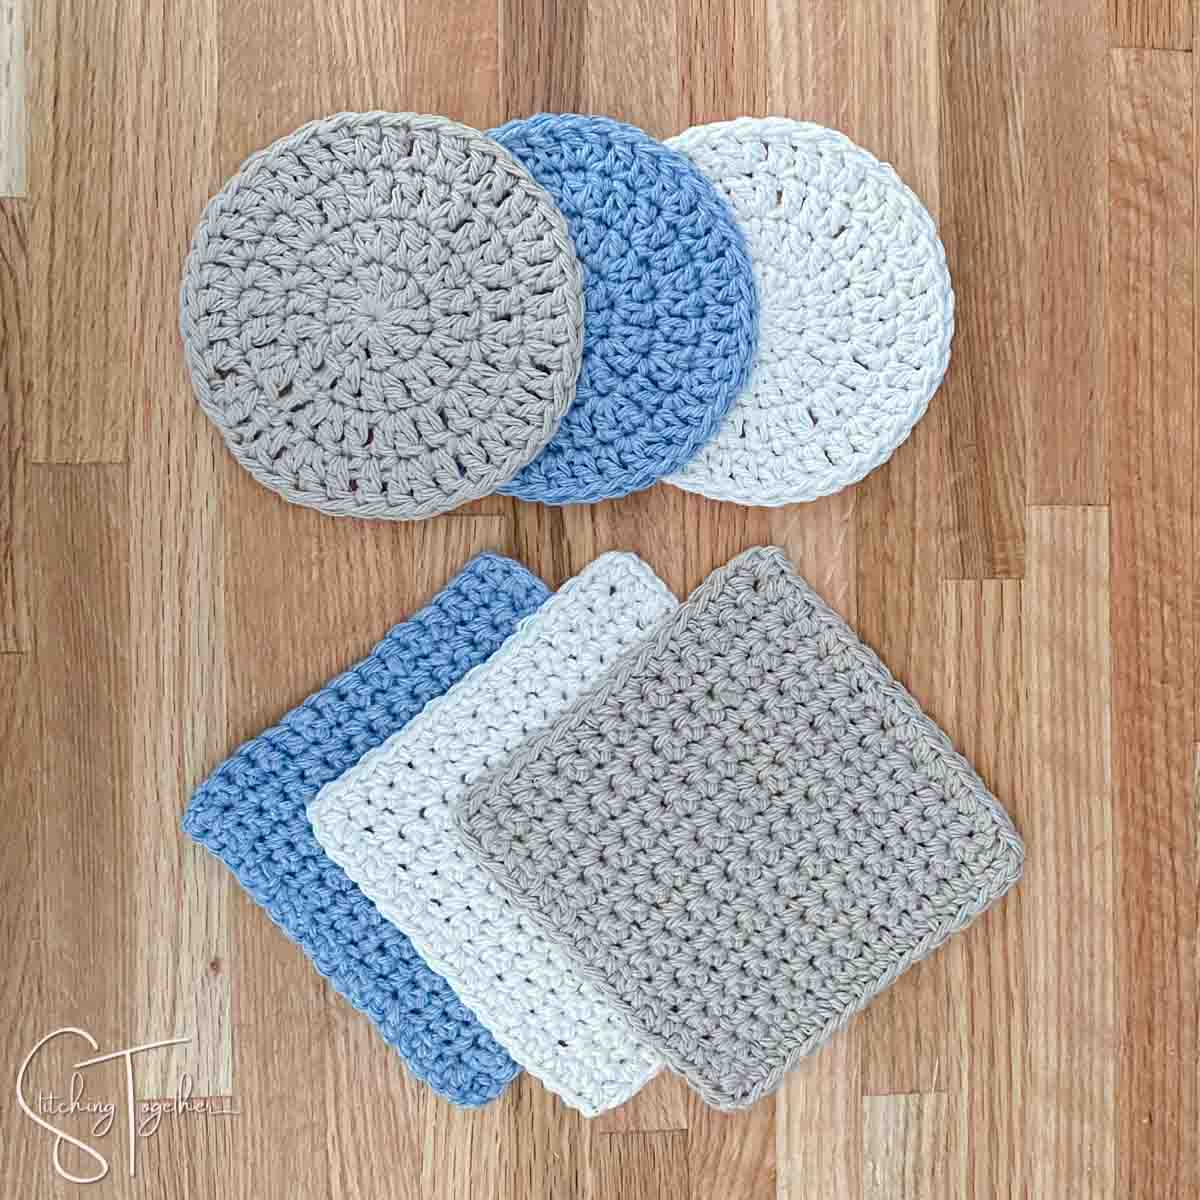 3 square and 3 round crochet coasters laying flat